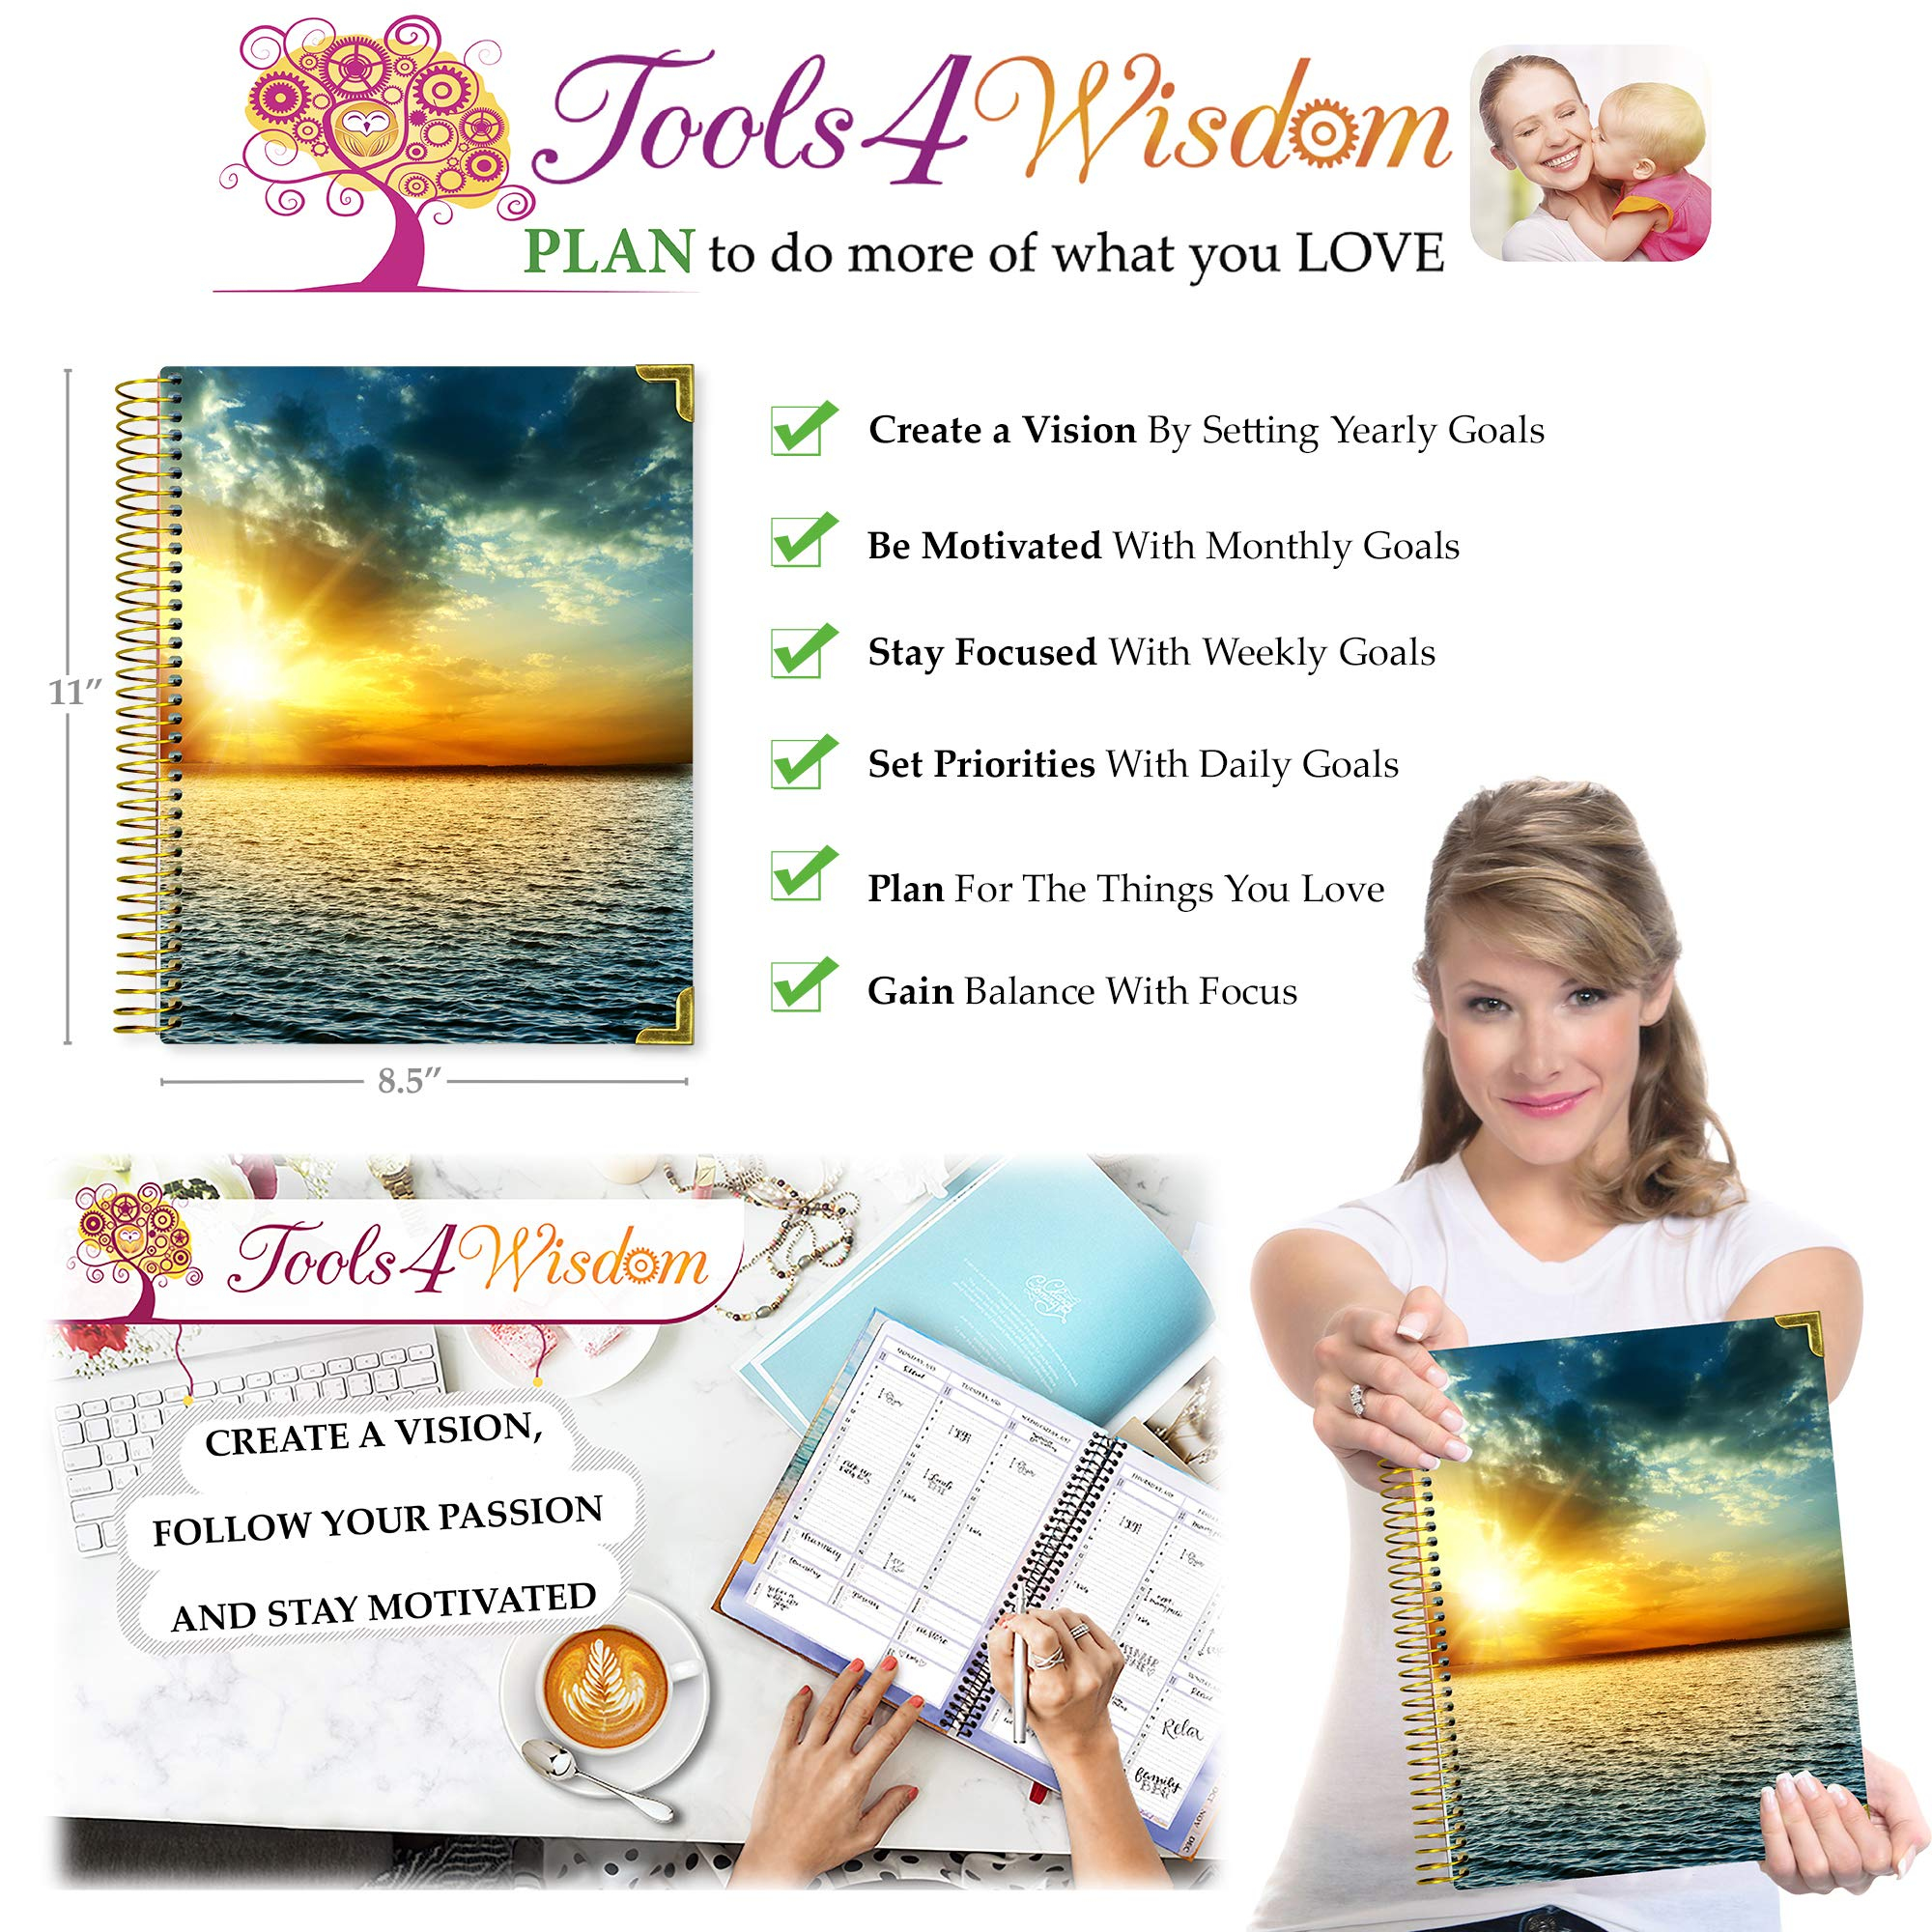 Tools4Wisdom Planner 2019-2020 - April 2019 to June 2020-8.5'' x 11'' Hardcover - Gold Edition by Tools4Wisdom (Image #9)